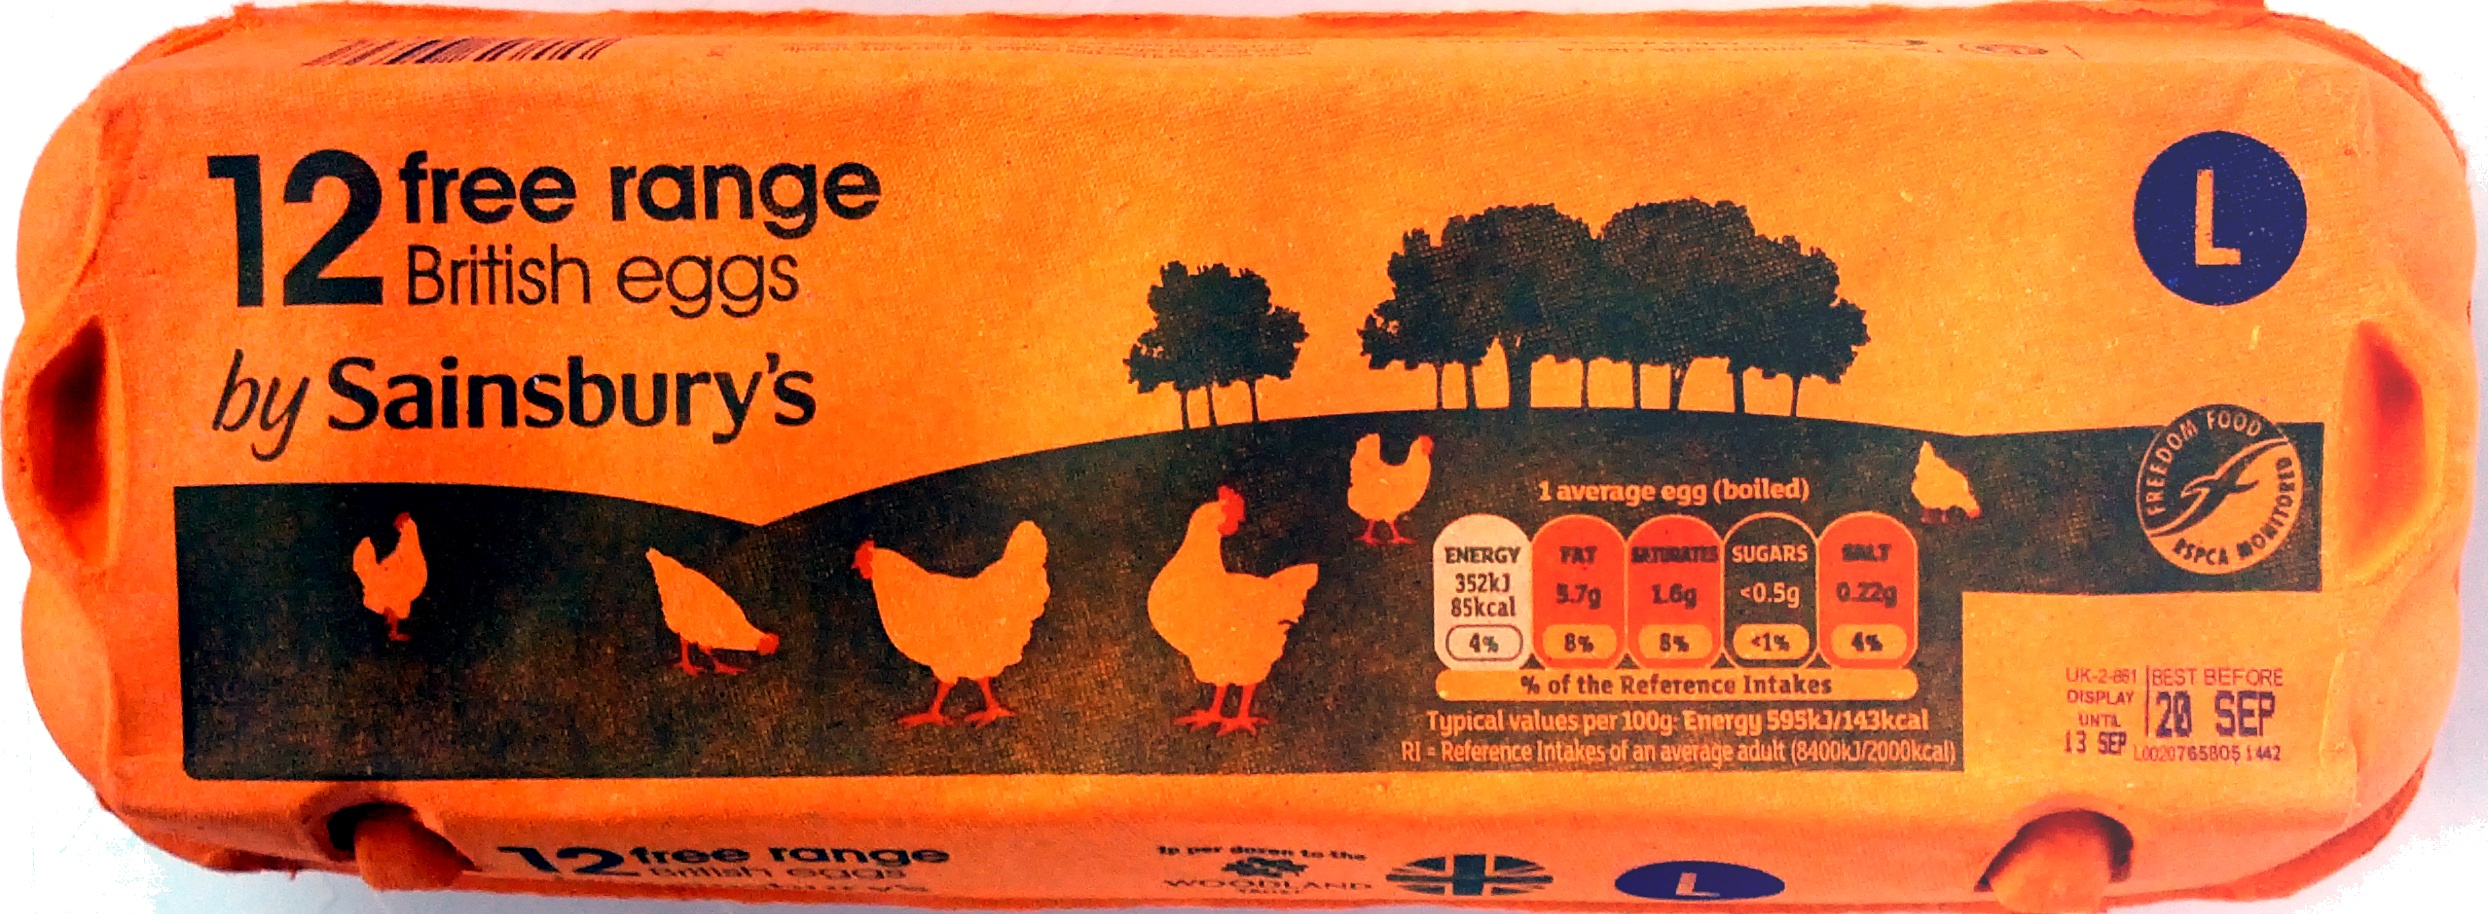 12 free range British eggs - Product - en